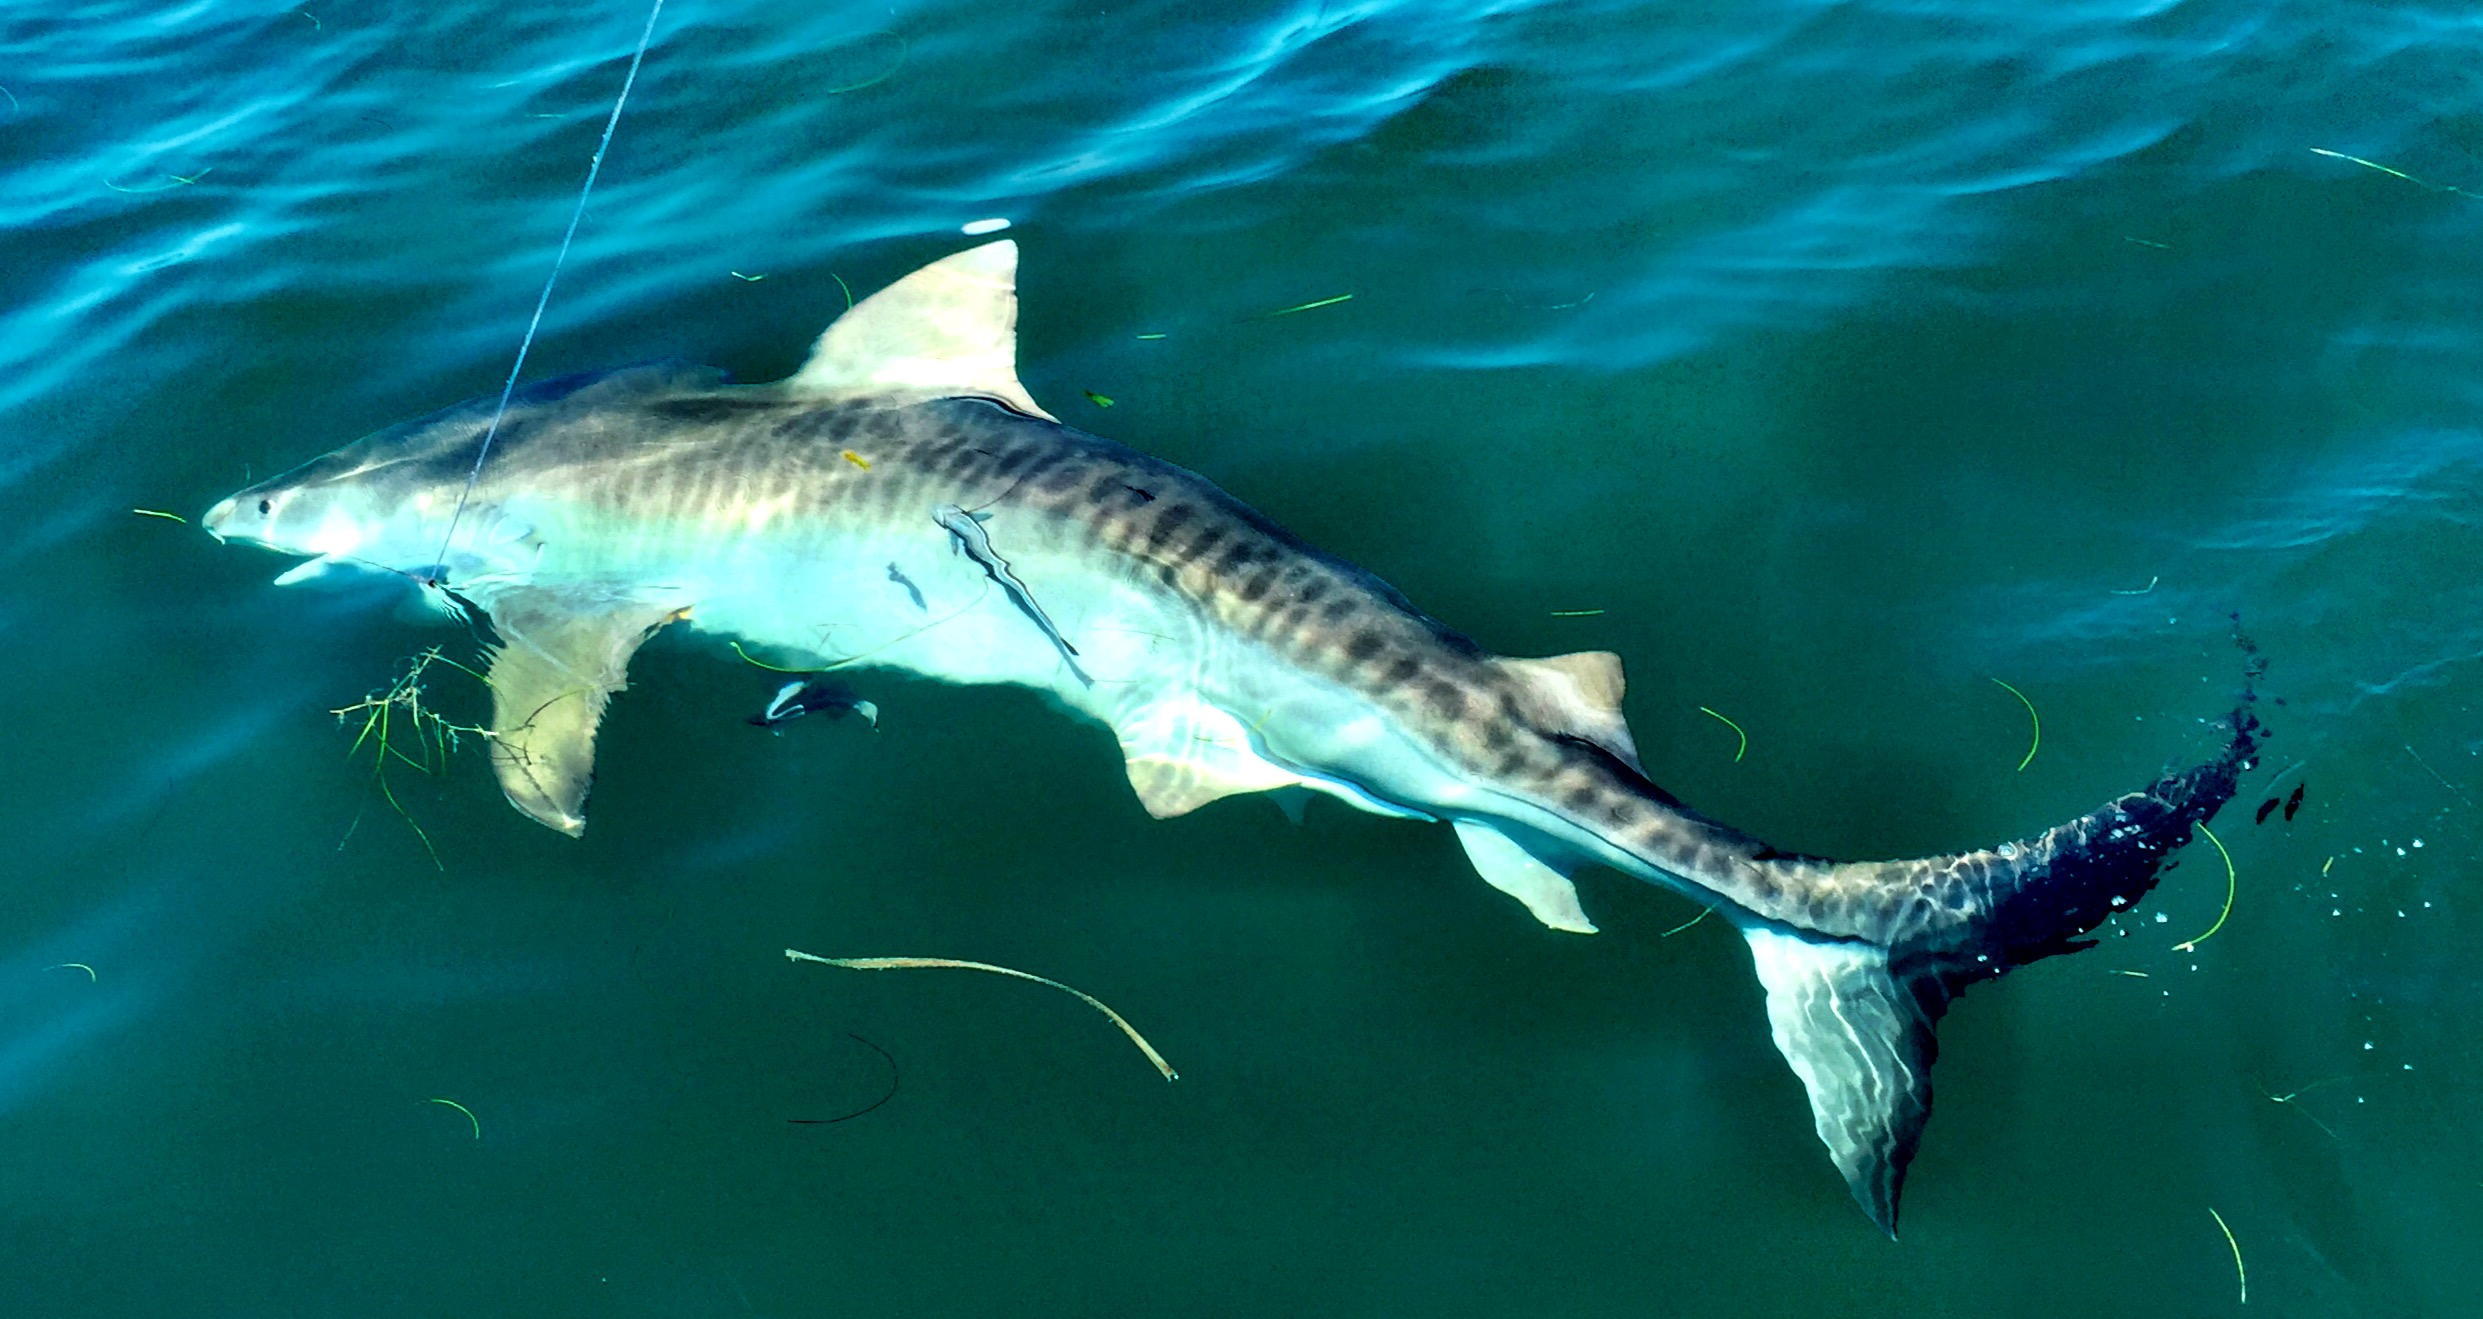 Shark fishing tenacity guide service tiger shark altavistaventures Image collections